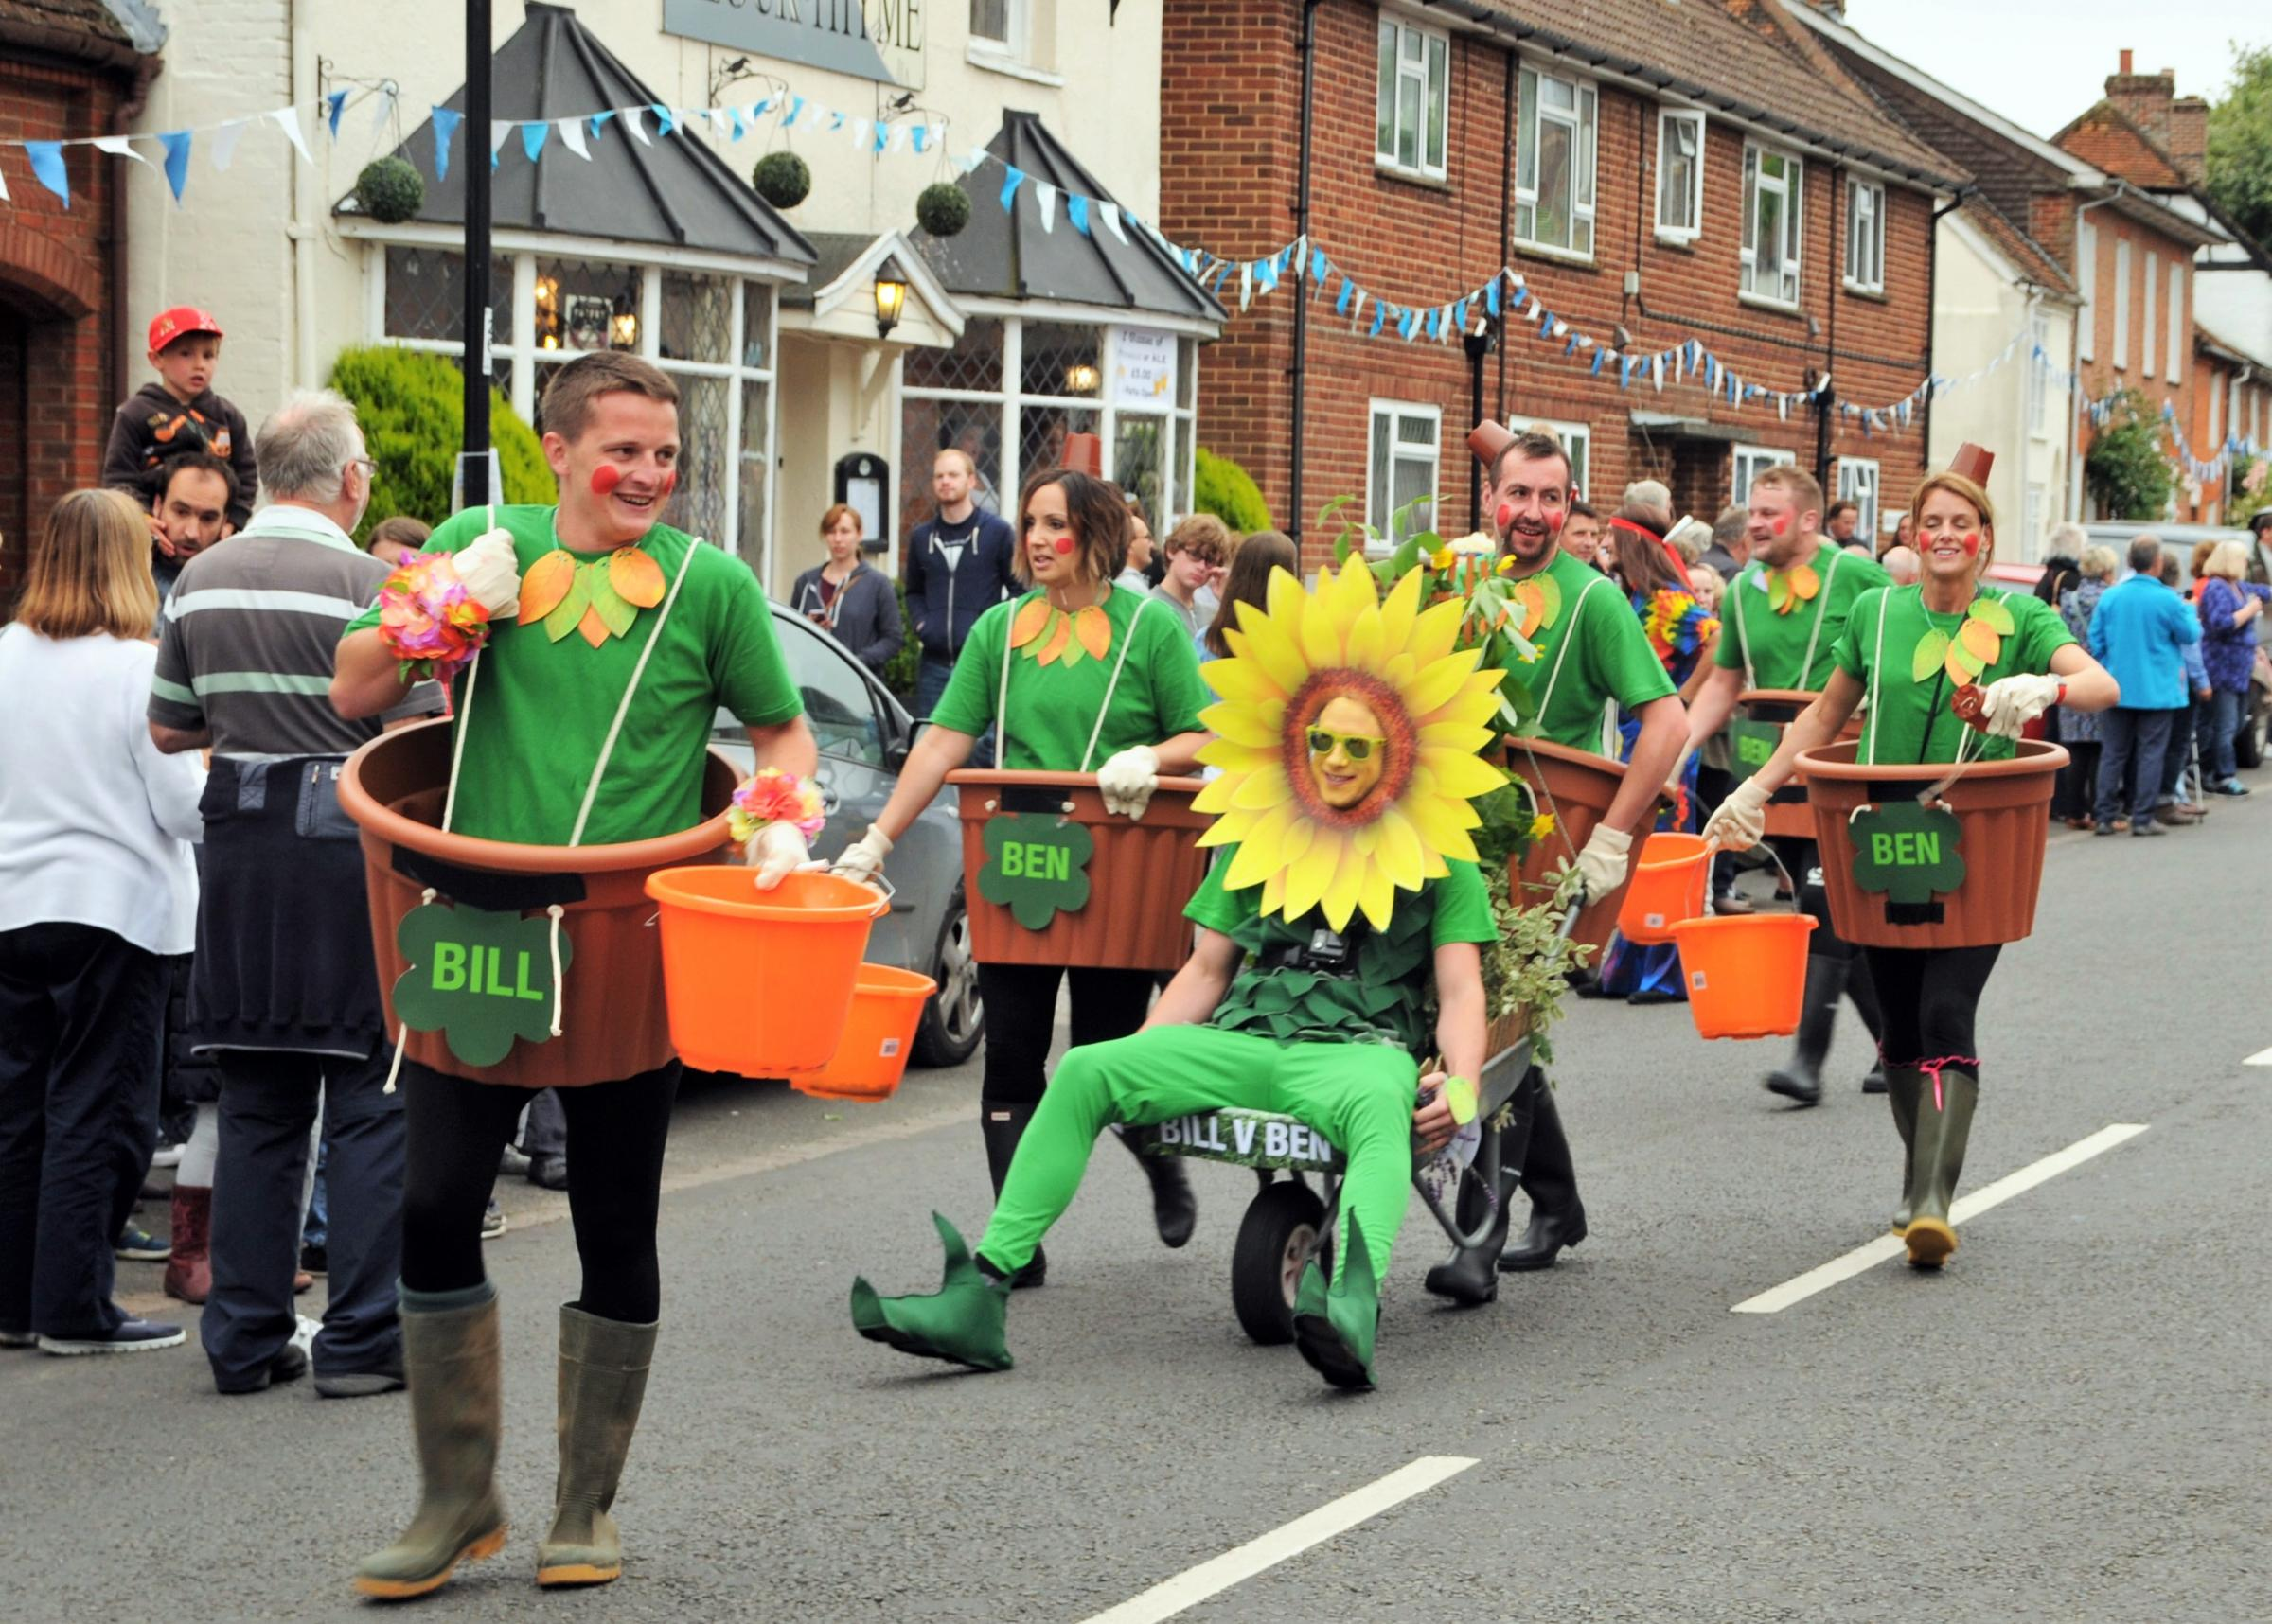 More than 80 competitors set to take on wheelbarrow race